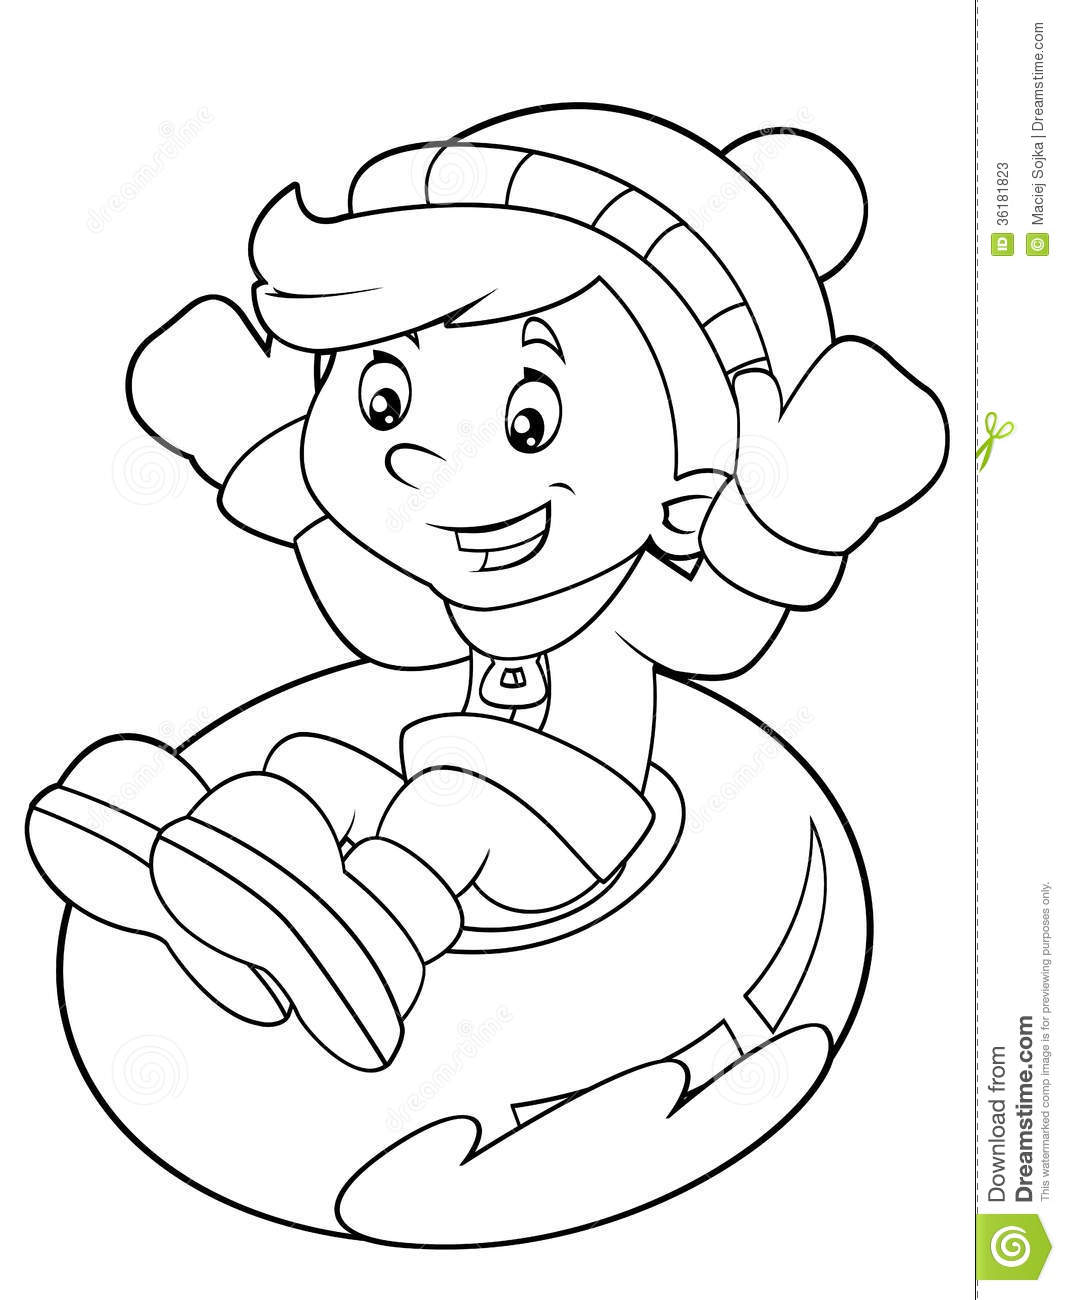 Cartoon Child Activity Illustration For The Children